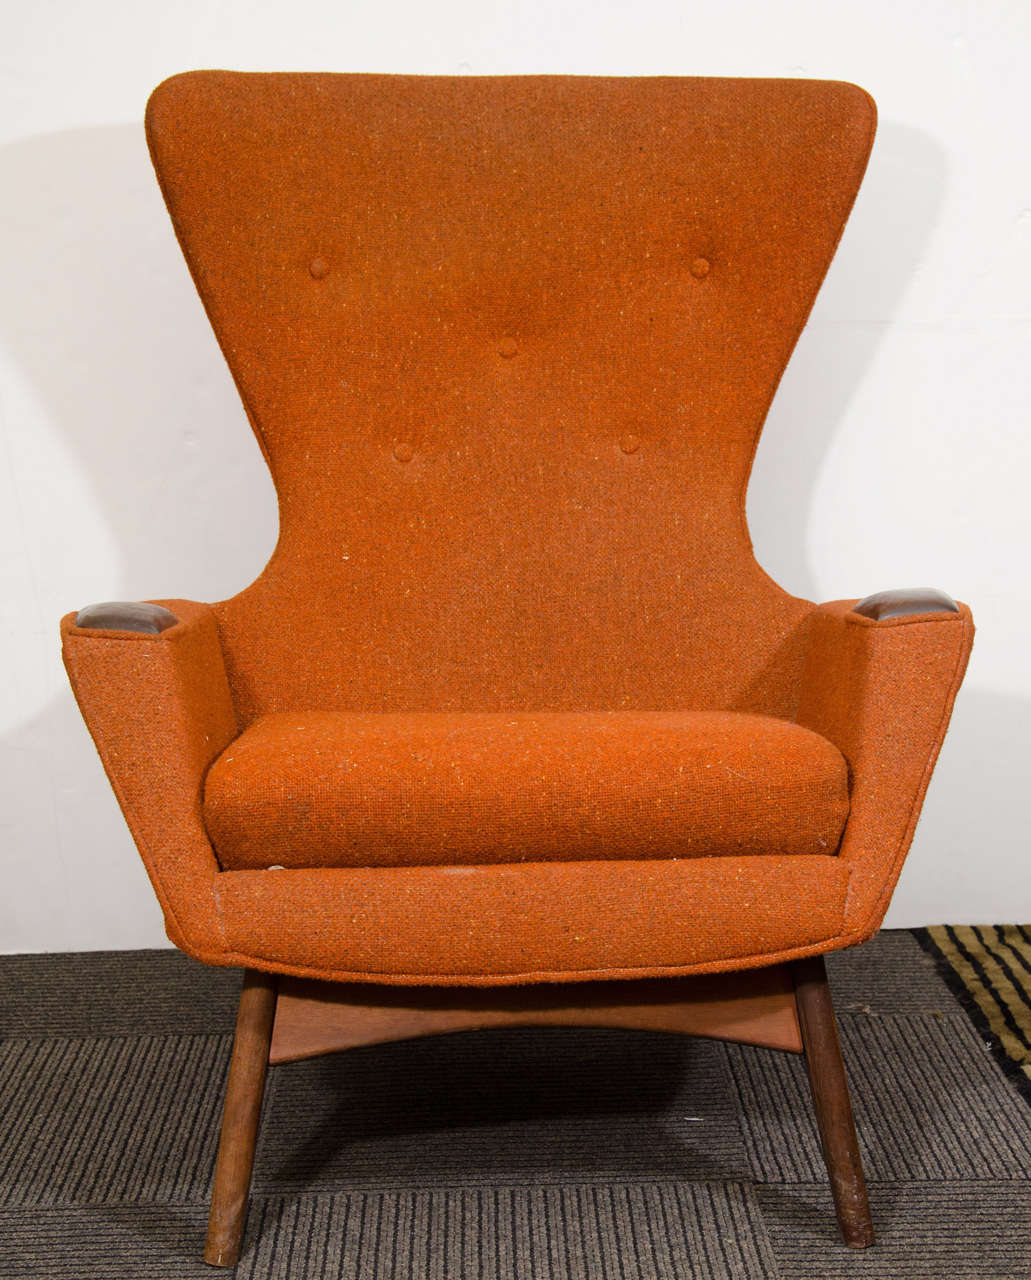 A Vintage High Back Sculptural Wing Chair In Original Orange Fabric By  Designer Adrian Pearsall.